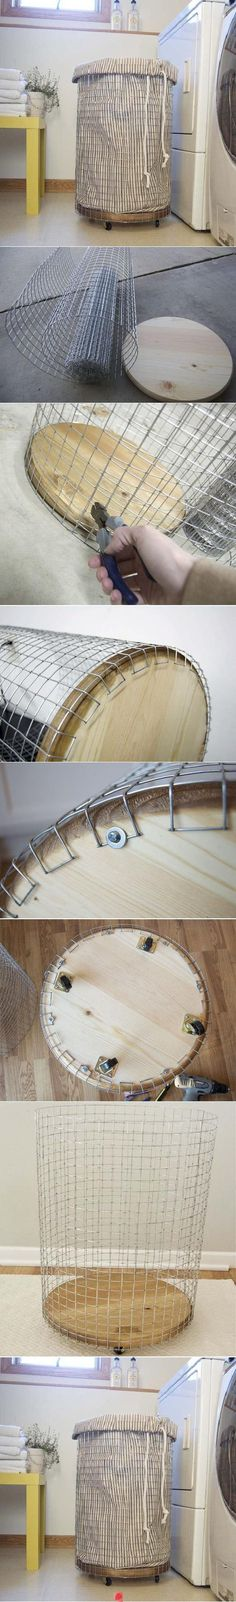 Cheap & Chic: How To Make a French-Vintage-Inspired Wire Hamper - DIY wire laundry basket La mejor imagen sobre diy face mask para tu gusto Estás buscando algo y no - Diy Projects To Try, Crafts To Make, Diy Crafts, Crafts Cheap, Towel Crafts, Weekend Projects, Wire Laundry Basket, Laundry Hamper, Laundry Bin